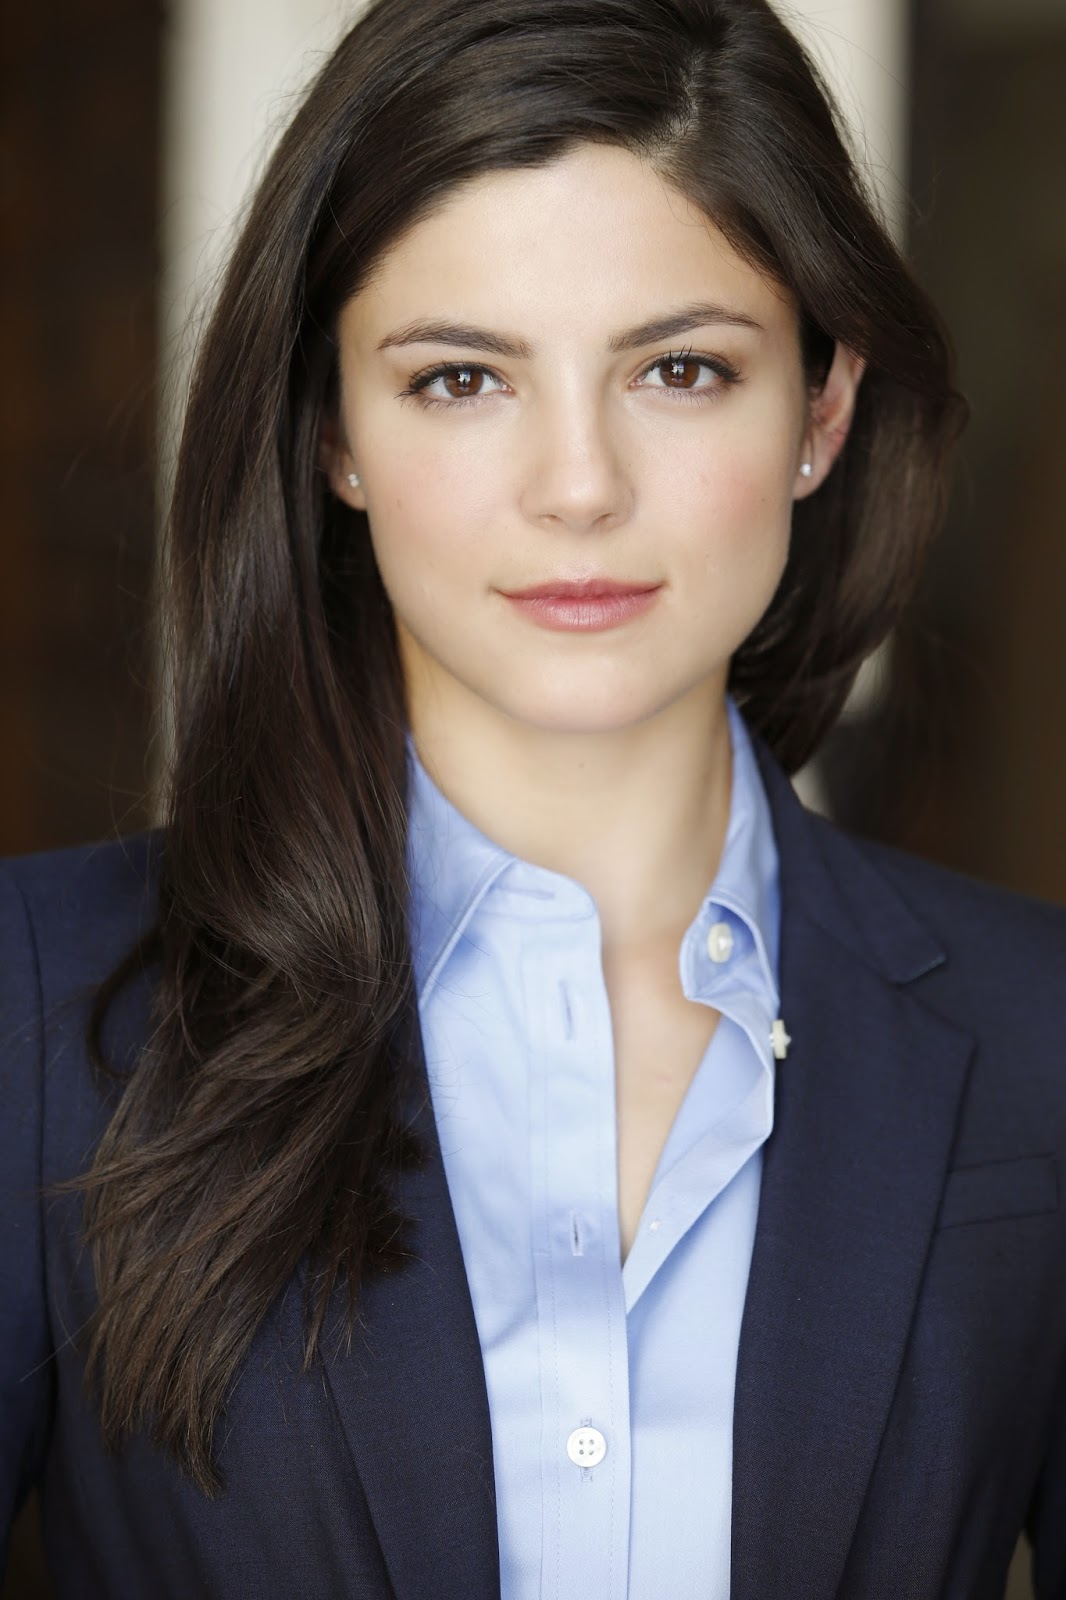 lesly kahn co submissions monica barbaro the mysterious girl next door a la katie holmes and lucy hale